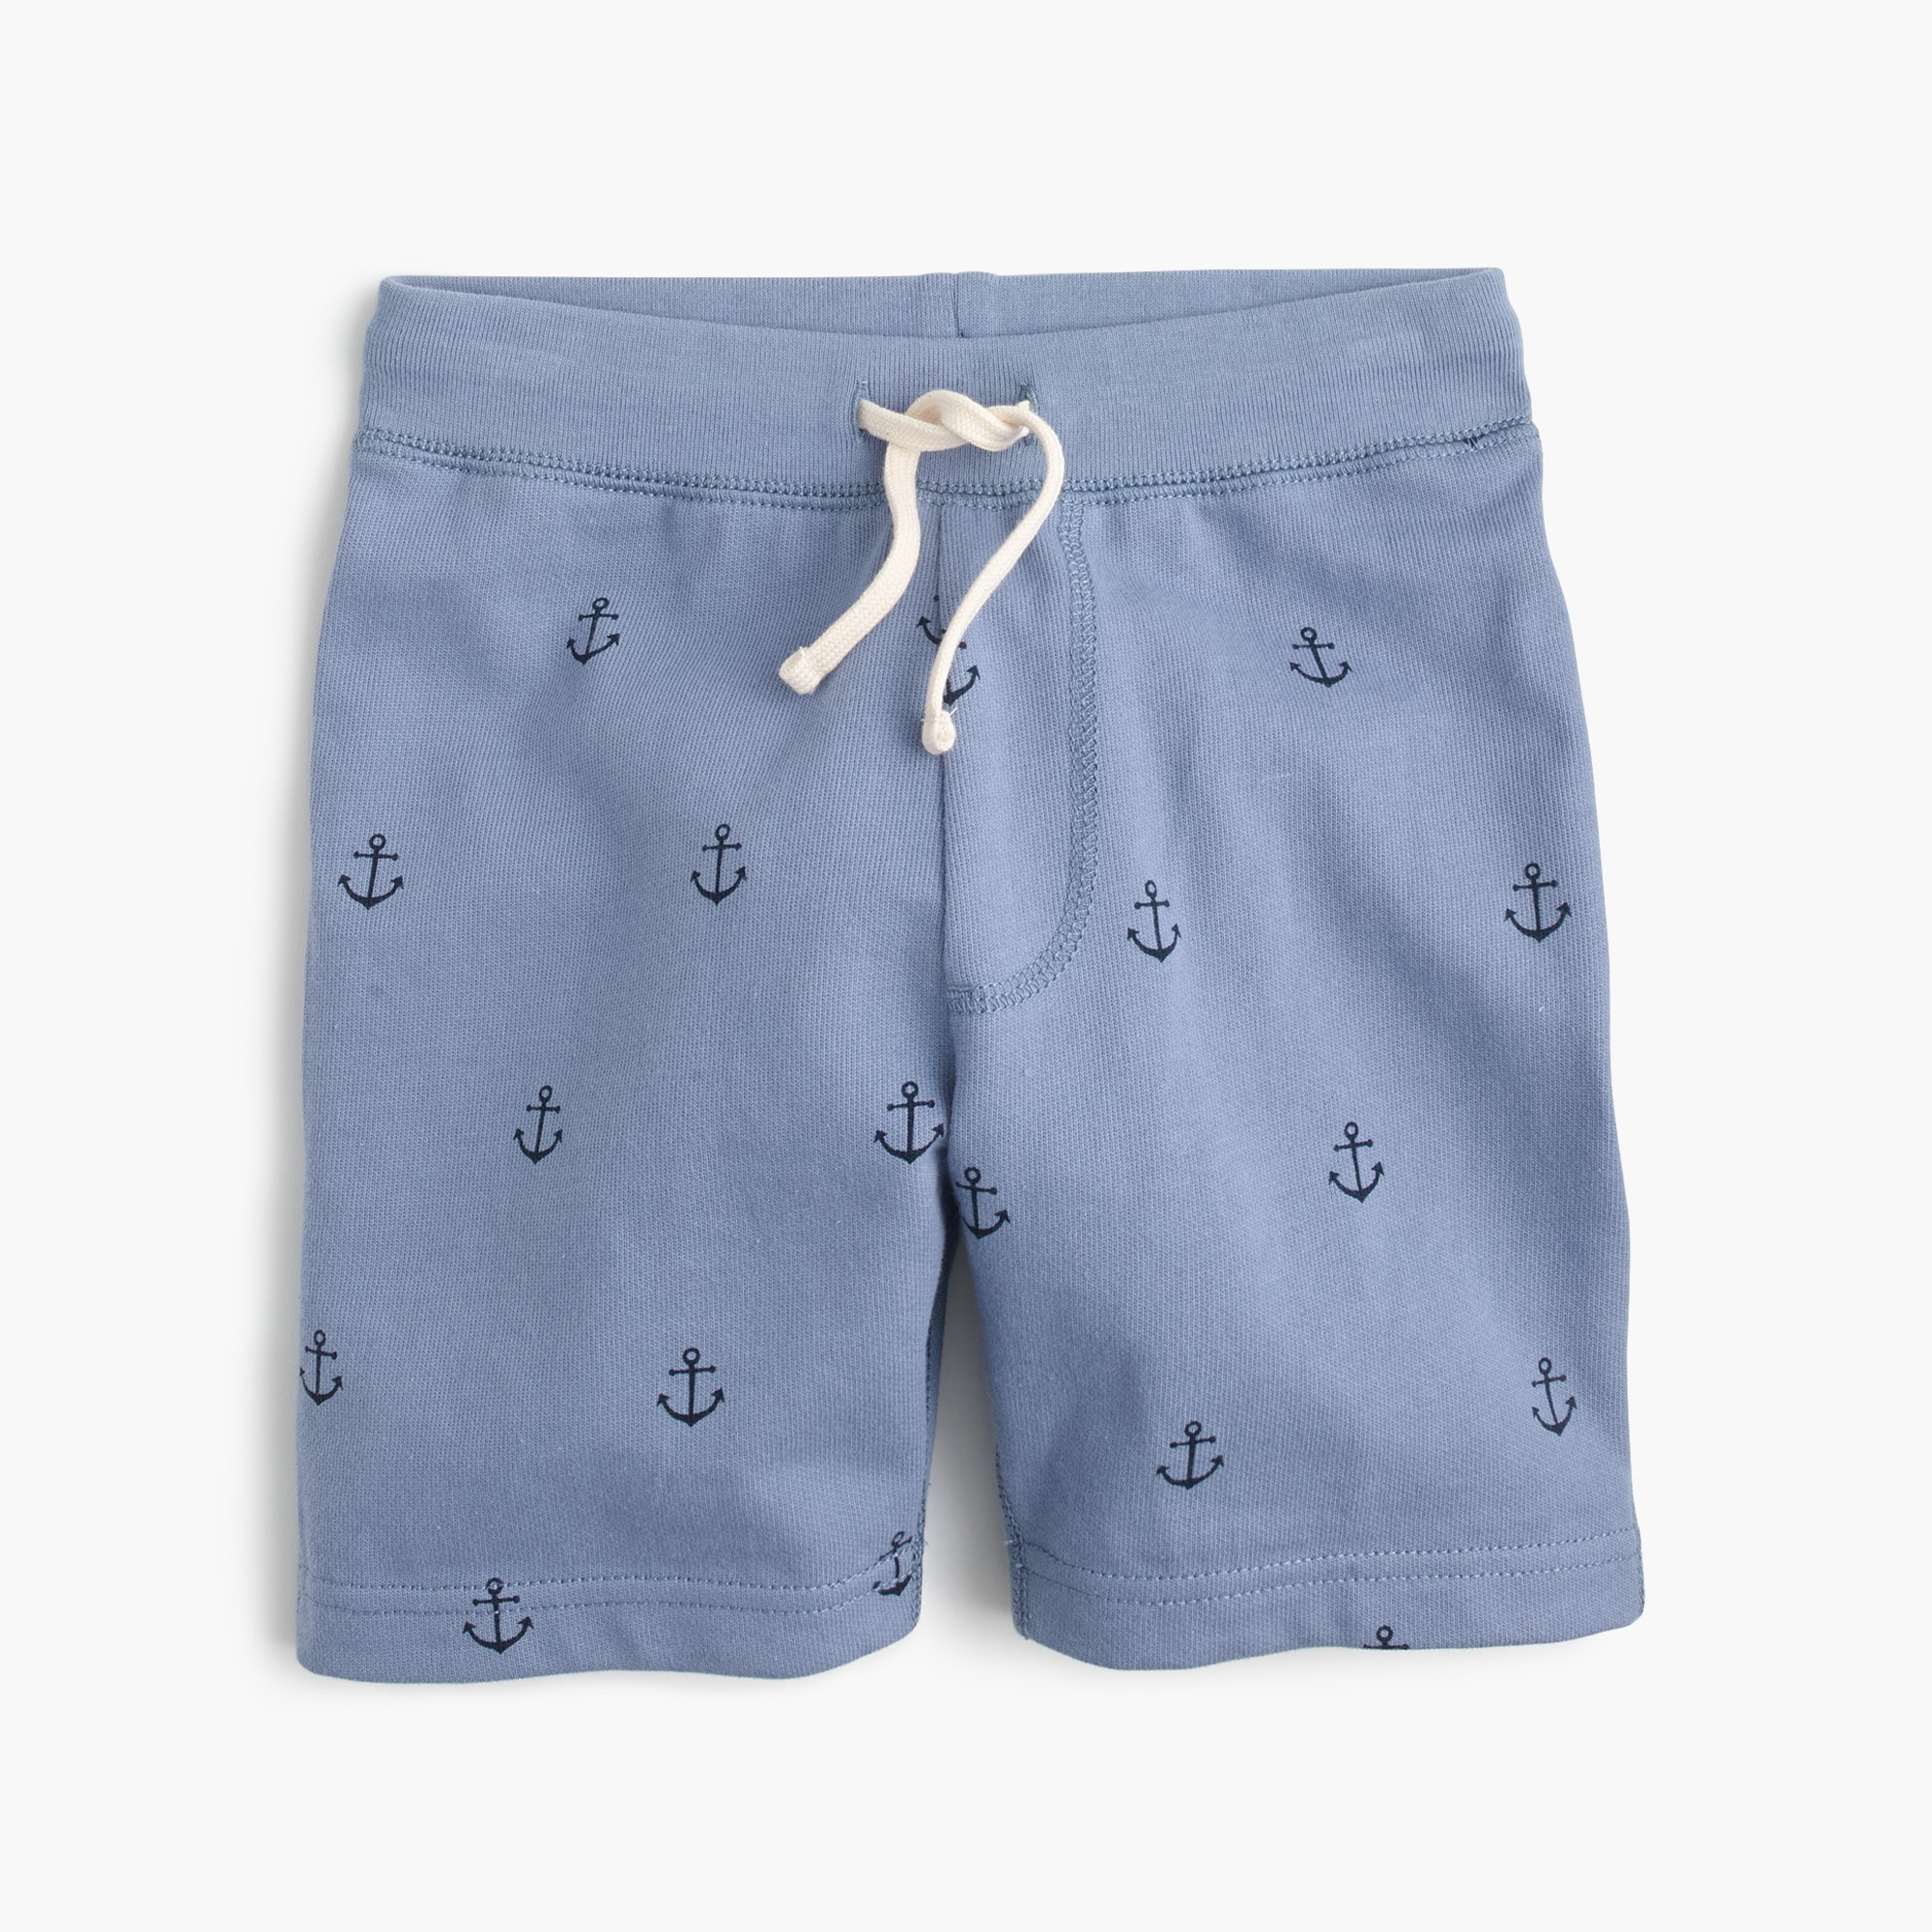 Boys' critter sweatshort in anchors boy sweatshirts & sweatpants c